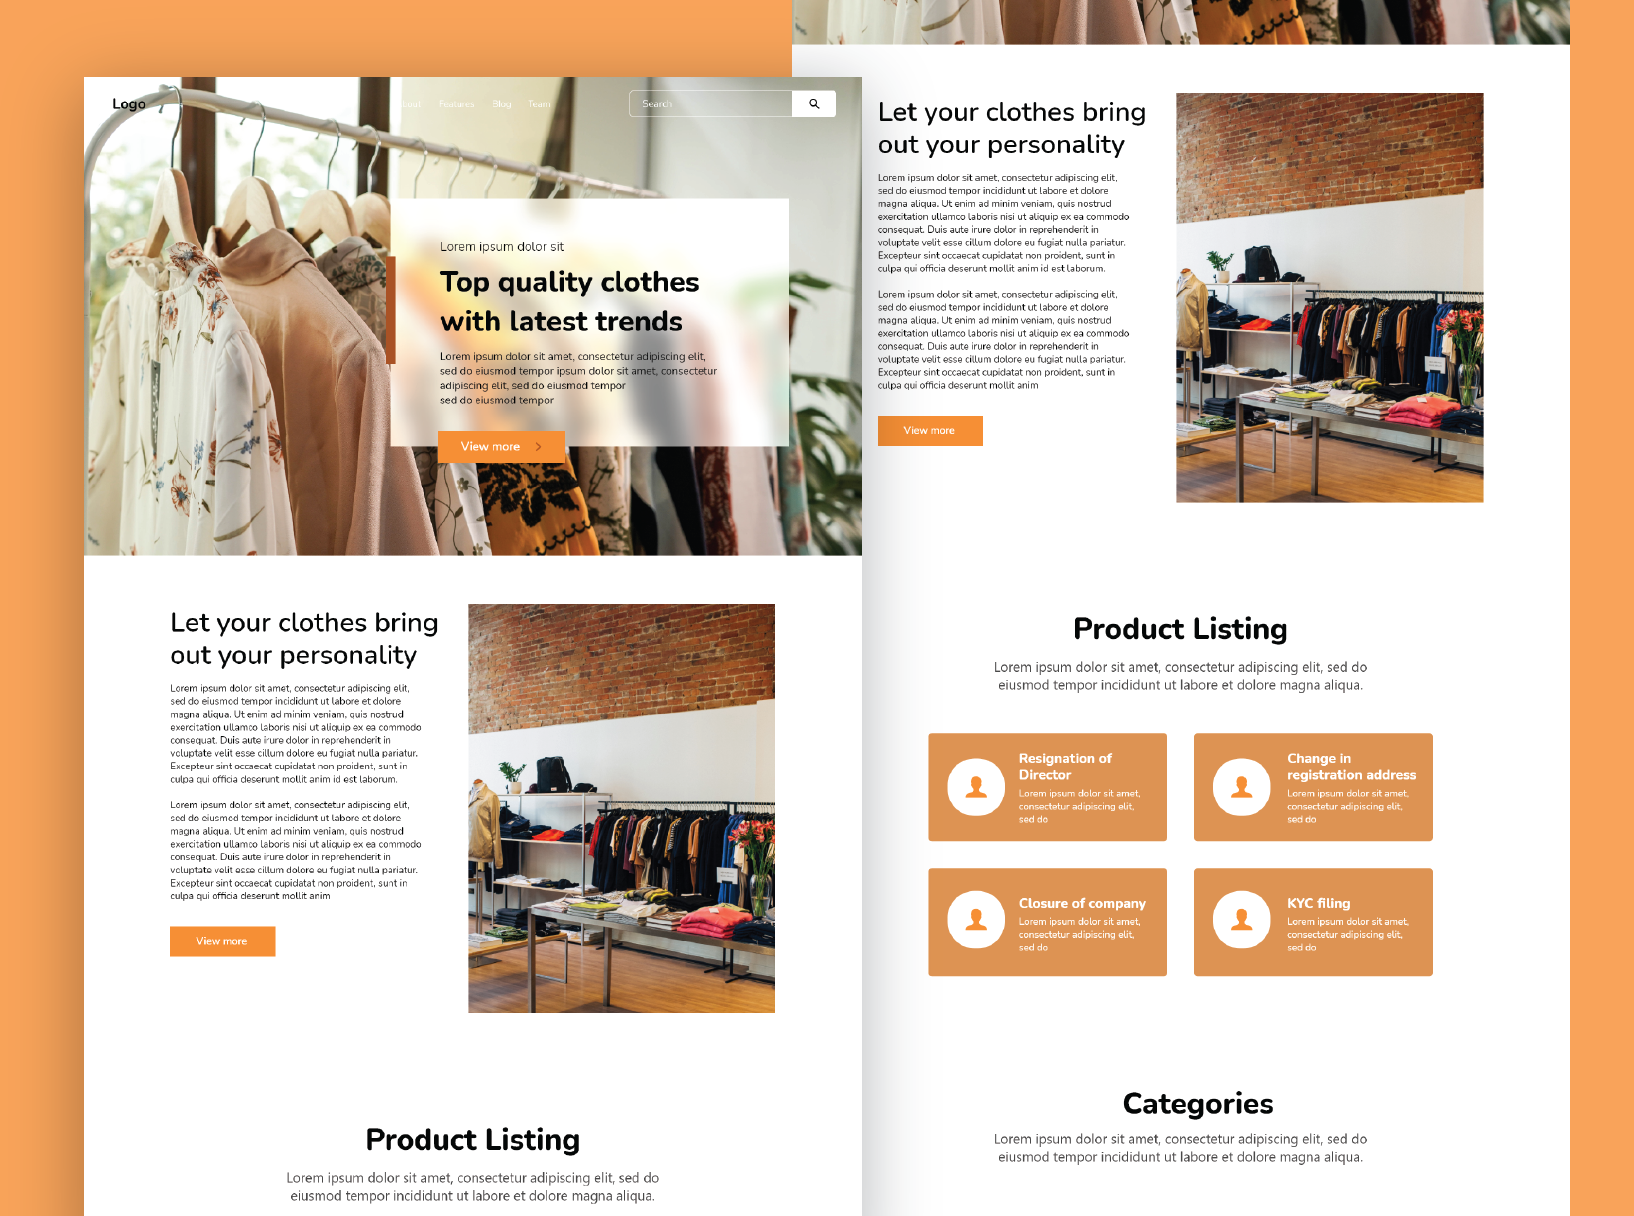 An example of a homepage created by Workik for branding sites.